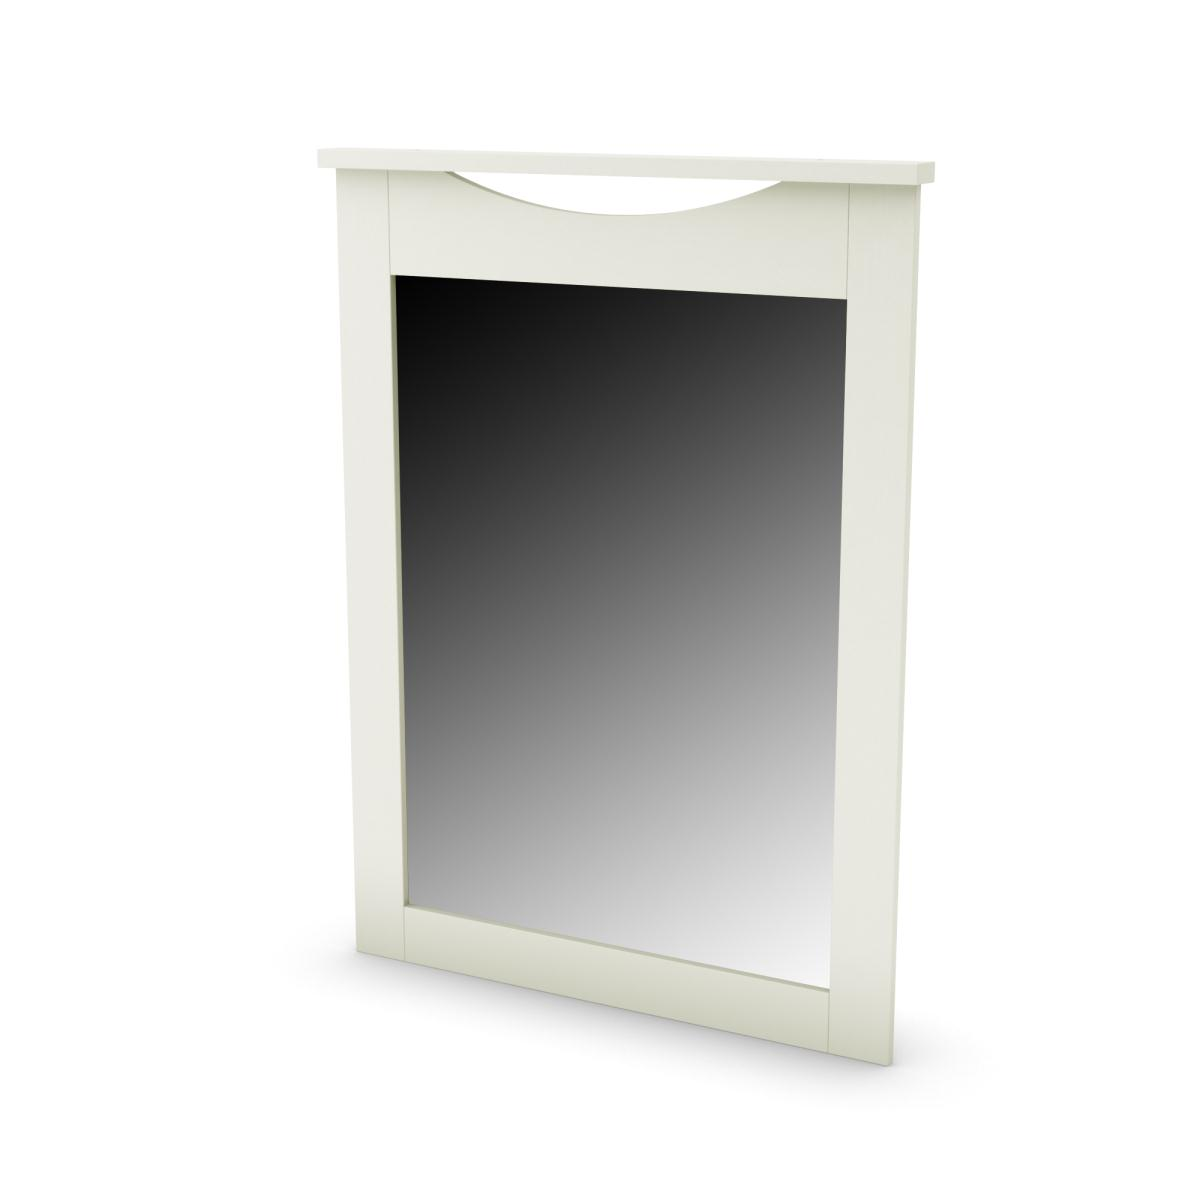 South Shore Step One Mirror 30 Inch x 41 Inch - Pure White